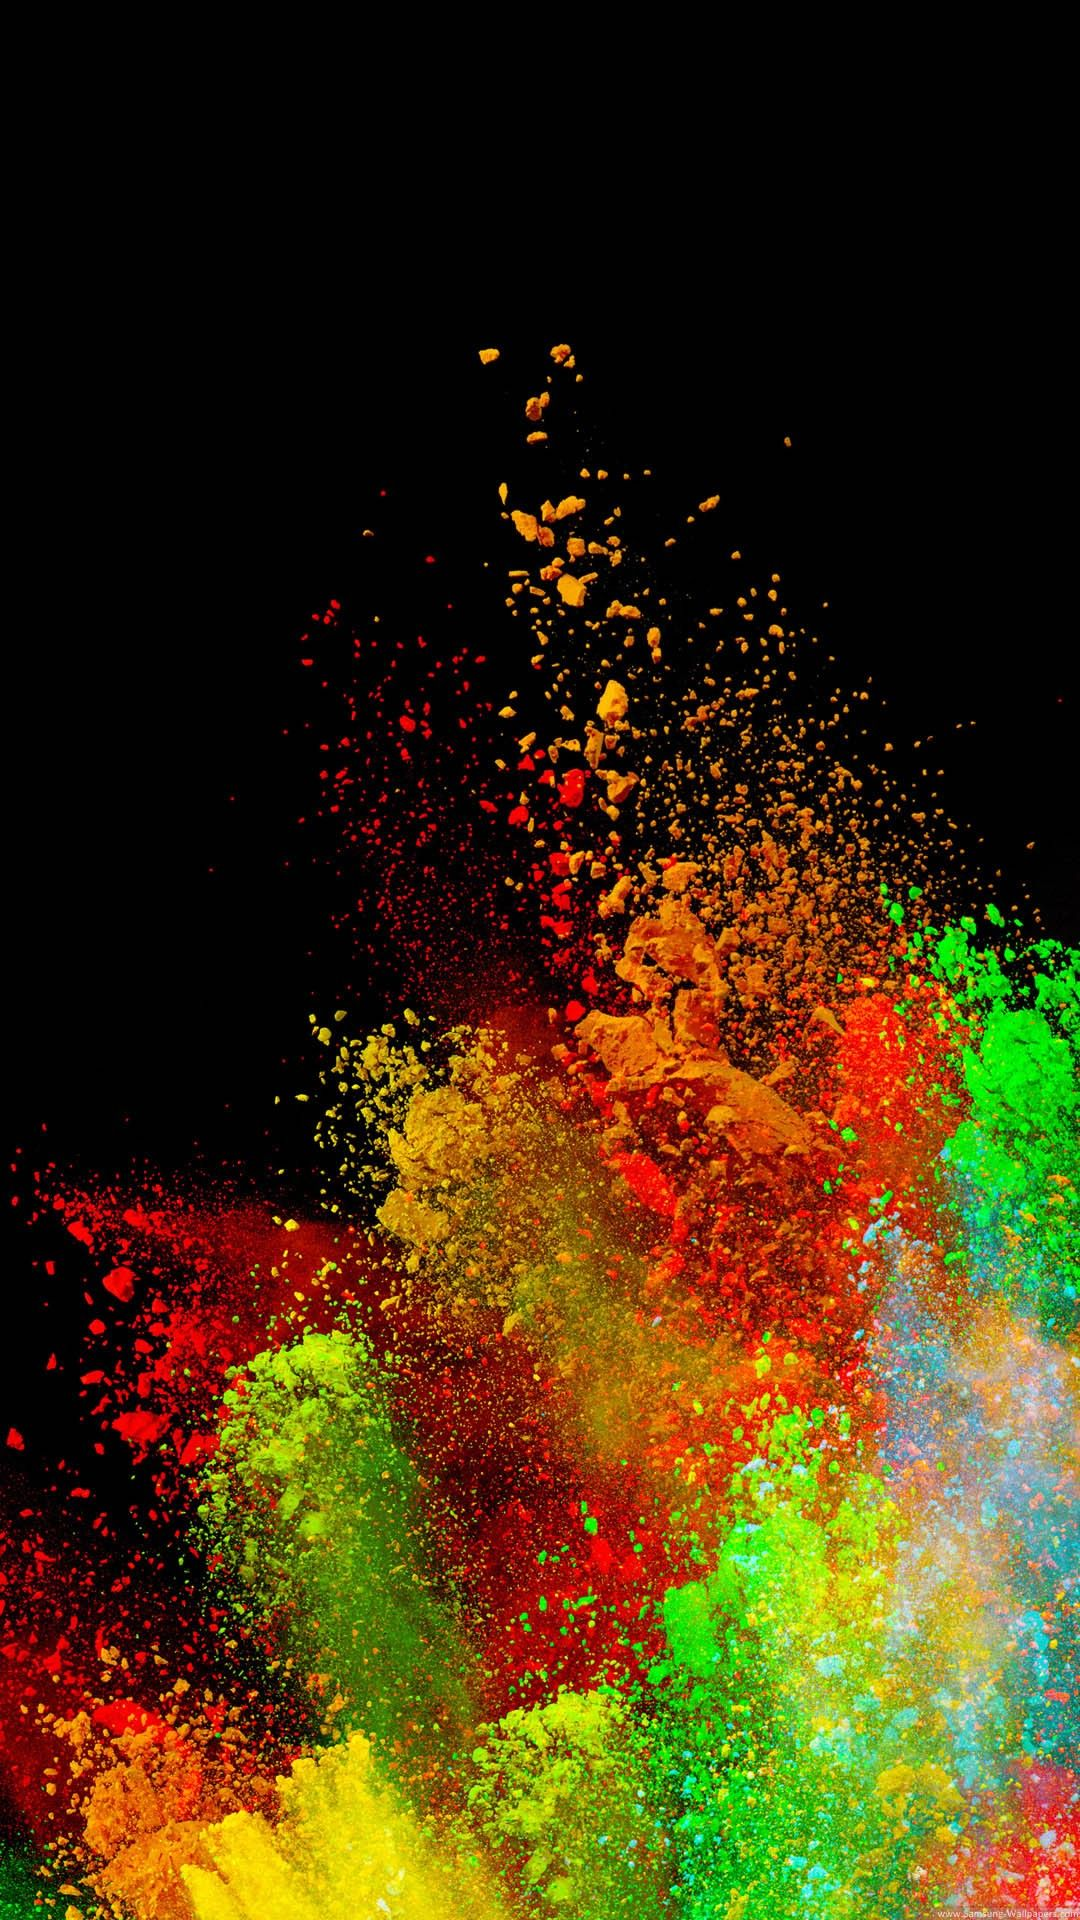 Color Splash Wallpaper | *Abstract and Geometric Wallpapers